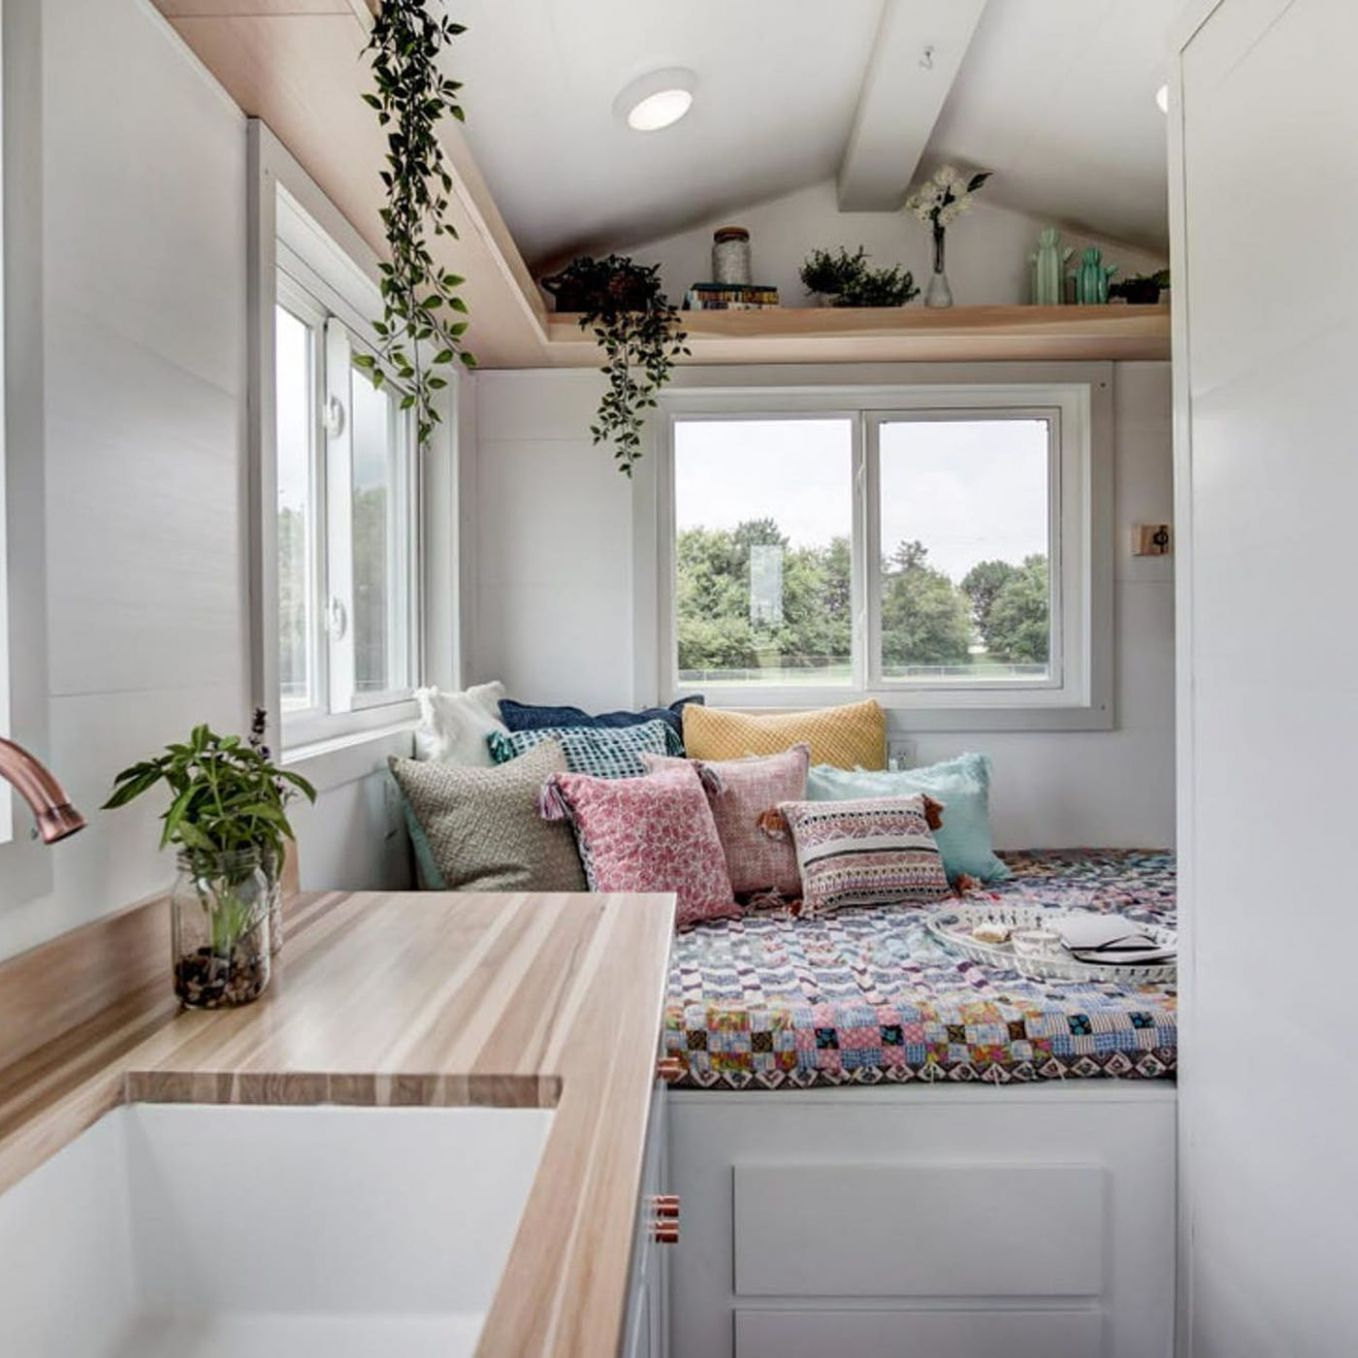 Tiny house packs all the essentials in 9 square feet - Curbed - tiny house essentials